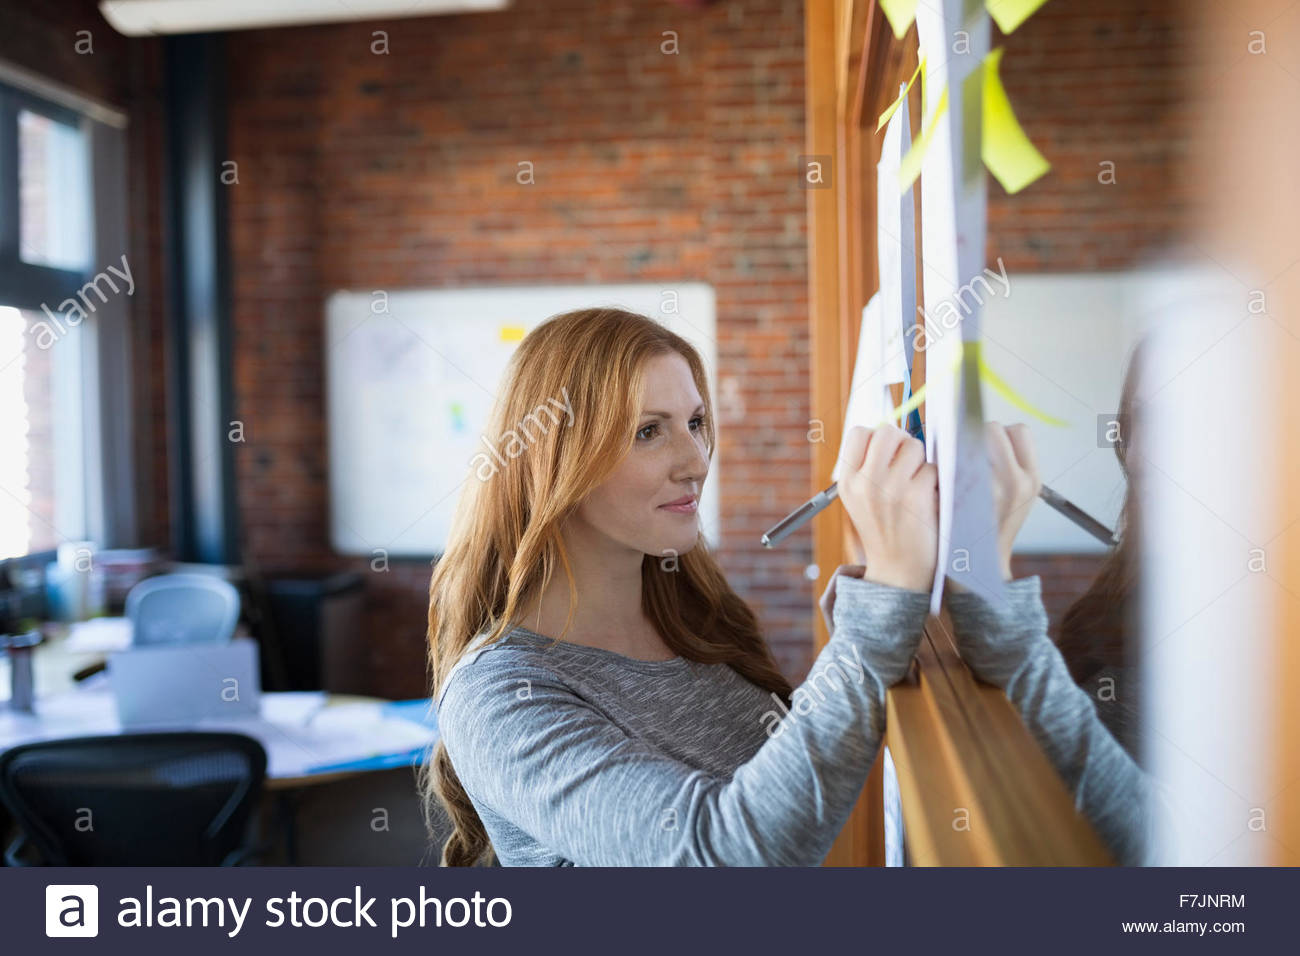 Woman in office Photo Stock